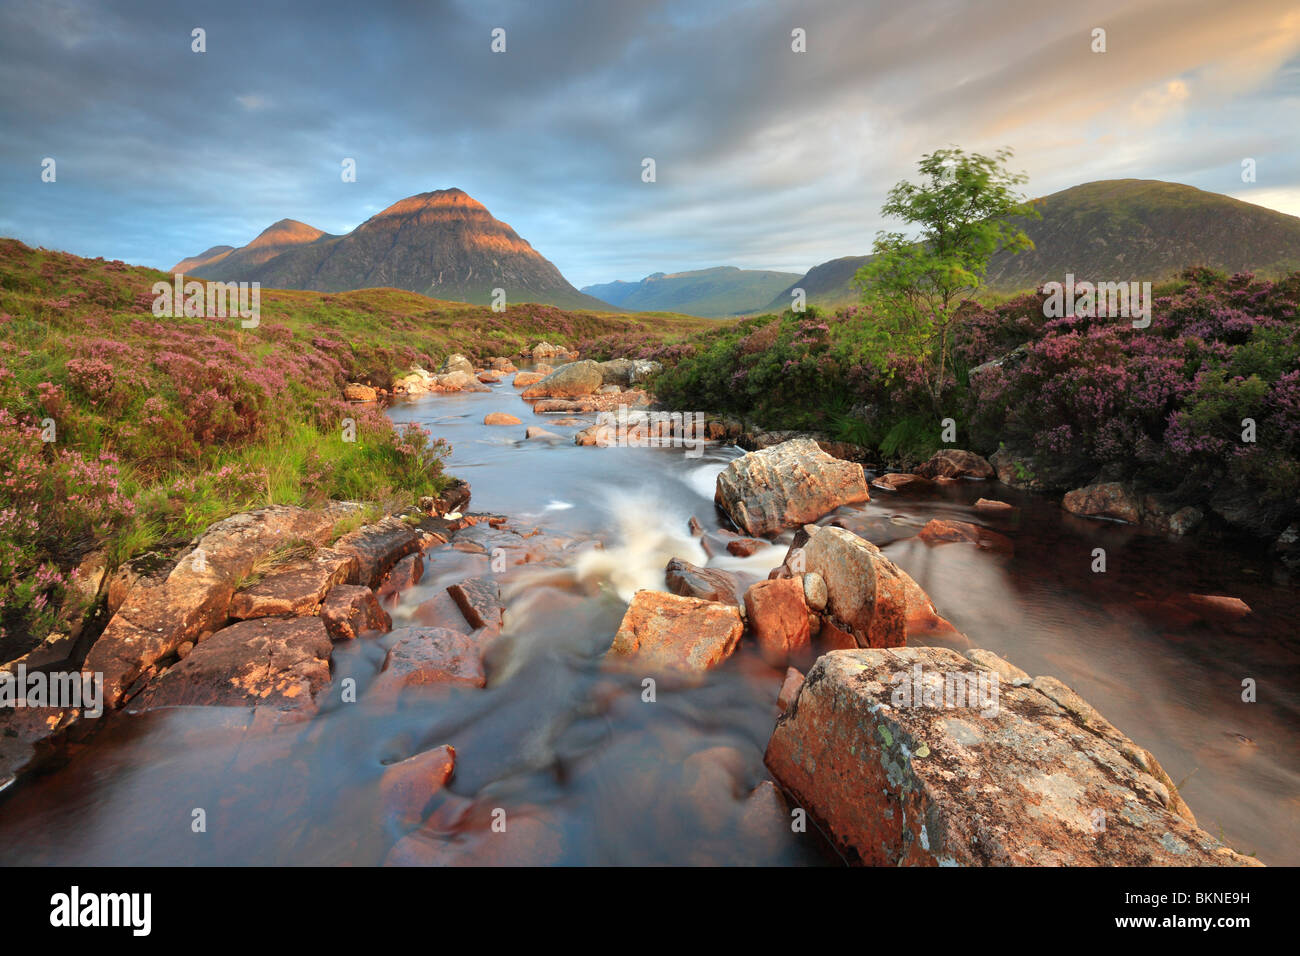 Sun strikes the peak of Stob Deargh over the River Coupall near Glen Etive in the Highlands of Scotland, UK - Stock Image